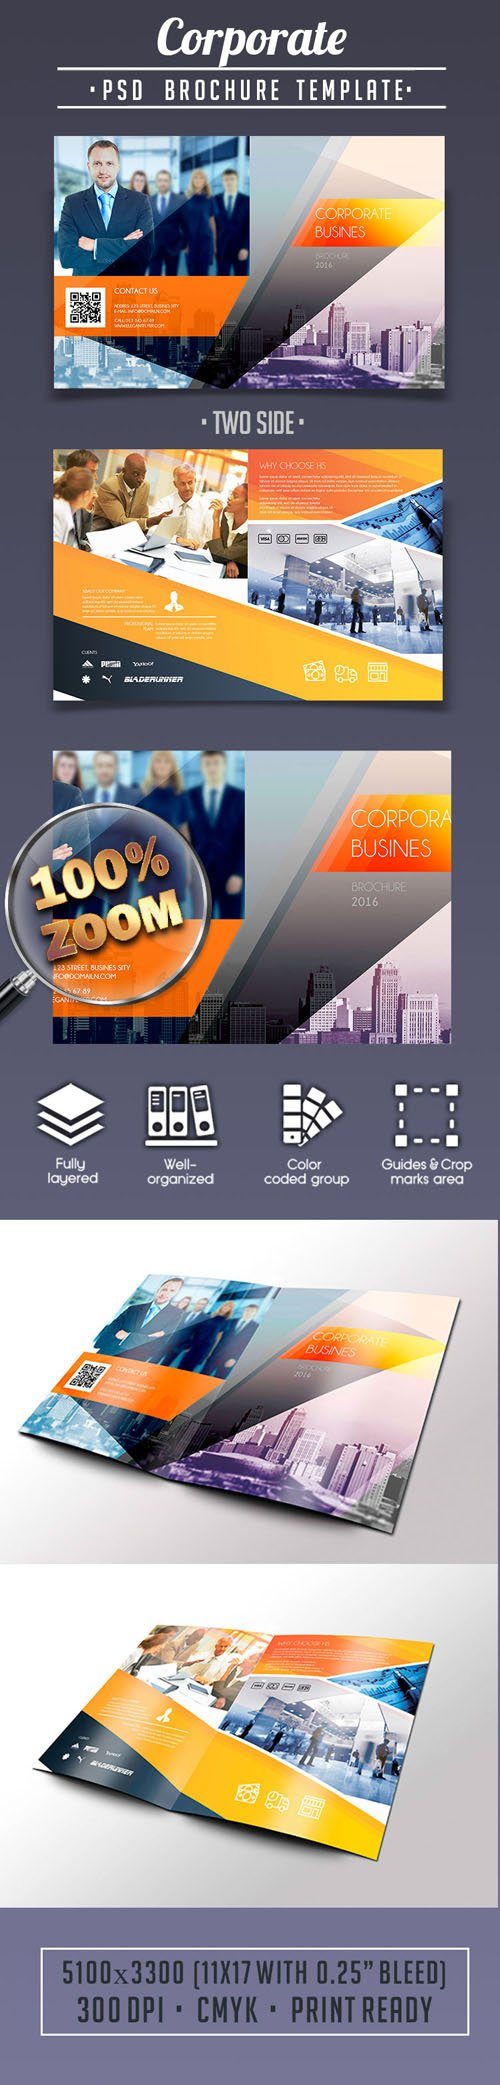 11x17 poster template photoshop - corporate business bi fold brochure psd template